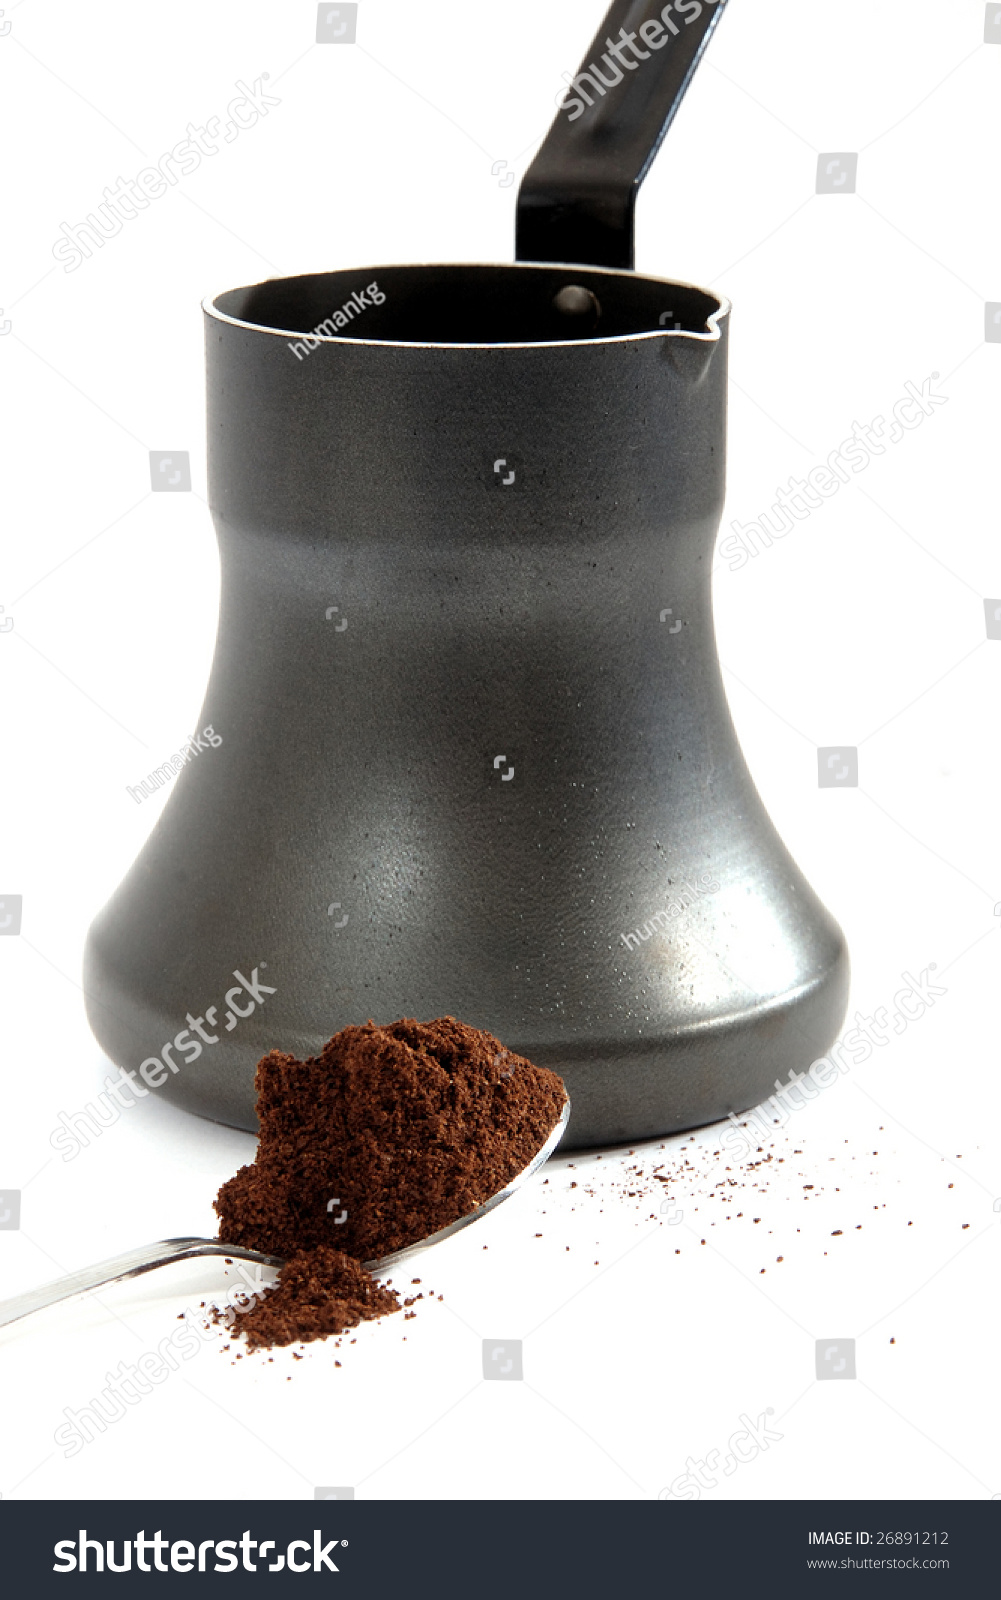 ground coffee stock photo - photo #31